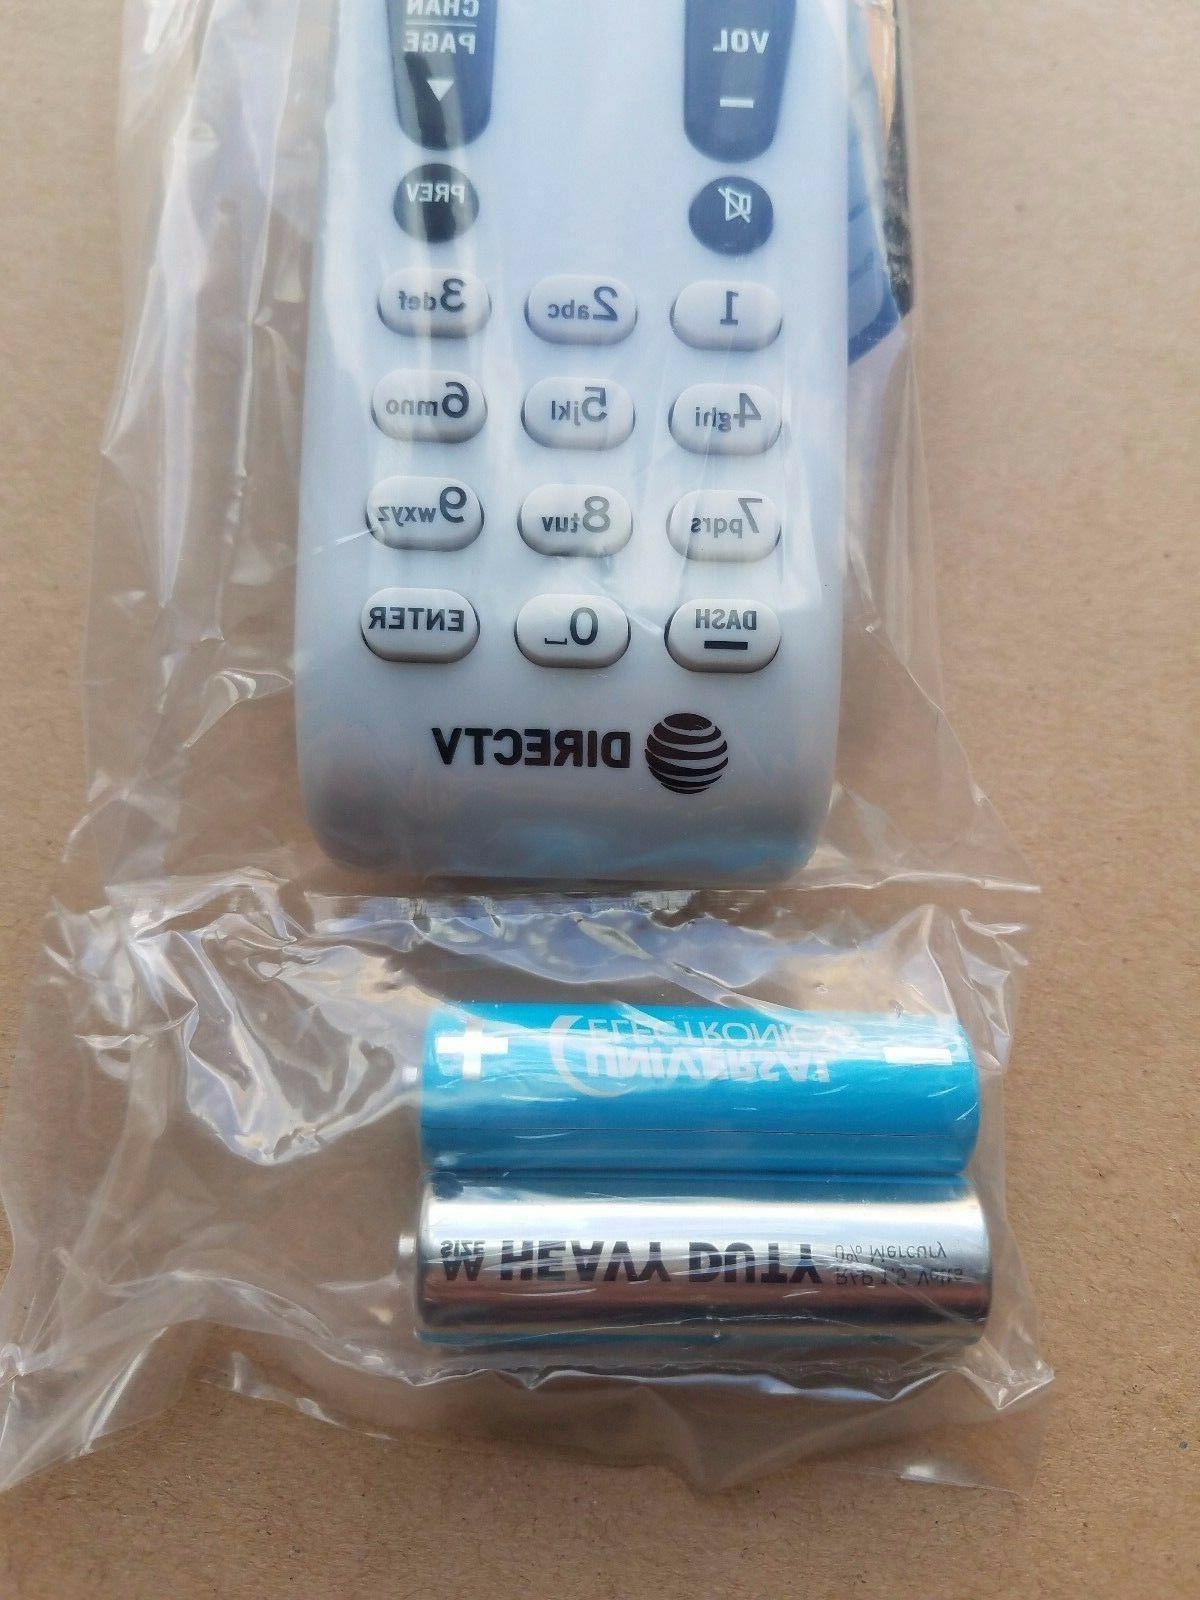 DIRECTV RF Universal Remote Control W/Batteries AT&T all